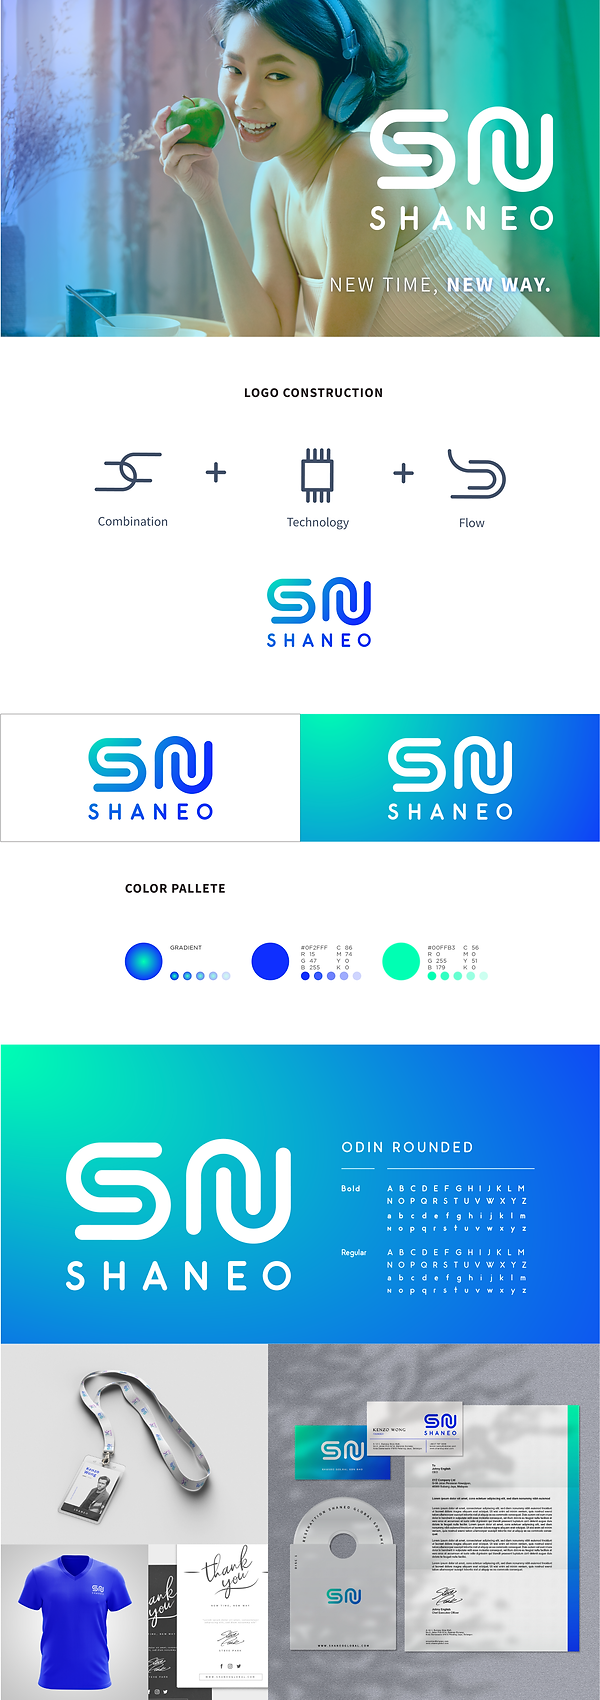 shaneo present-02.png